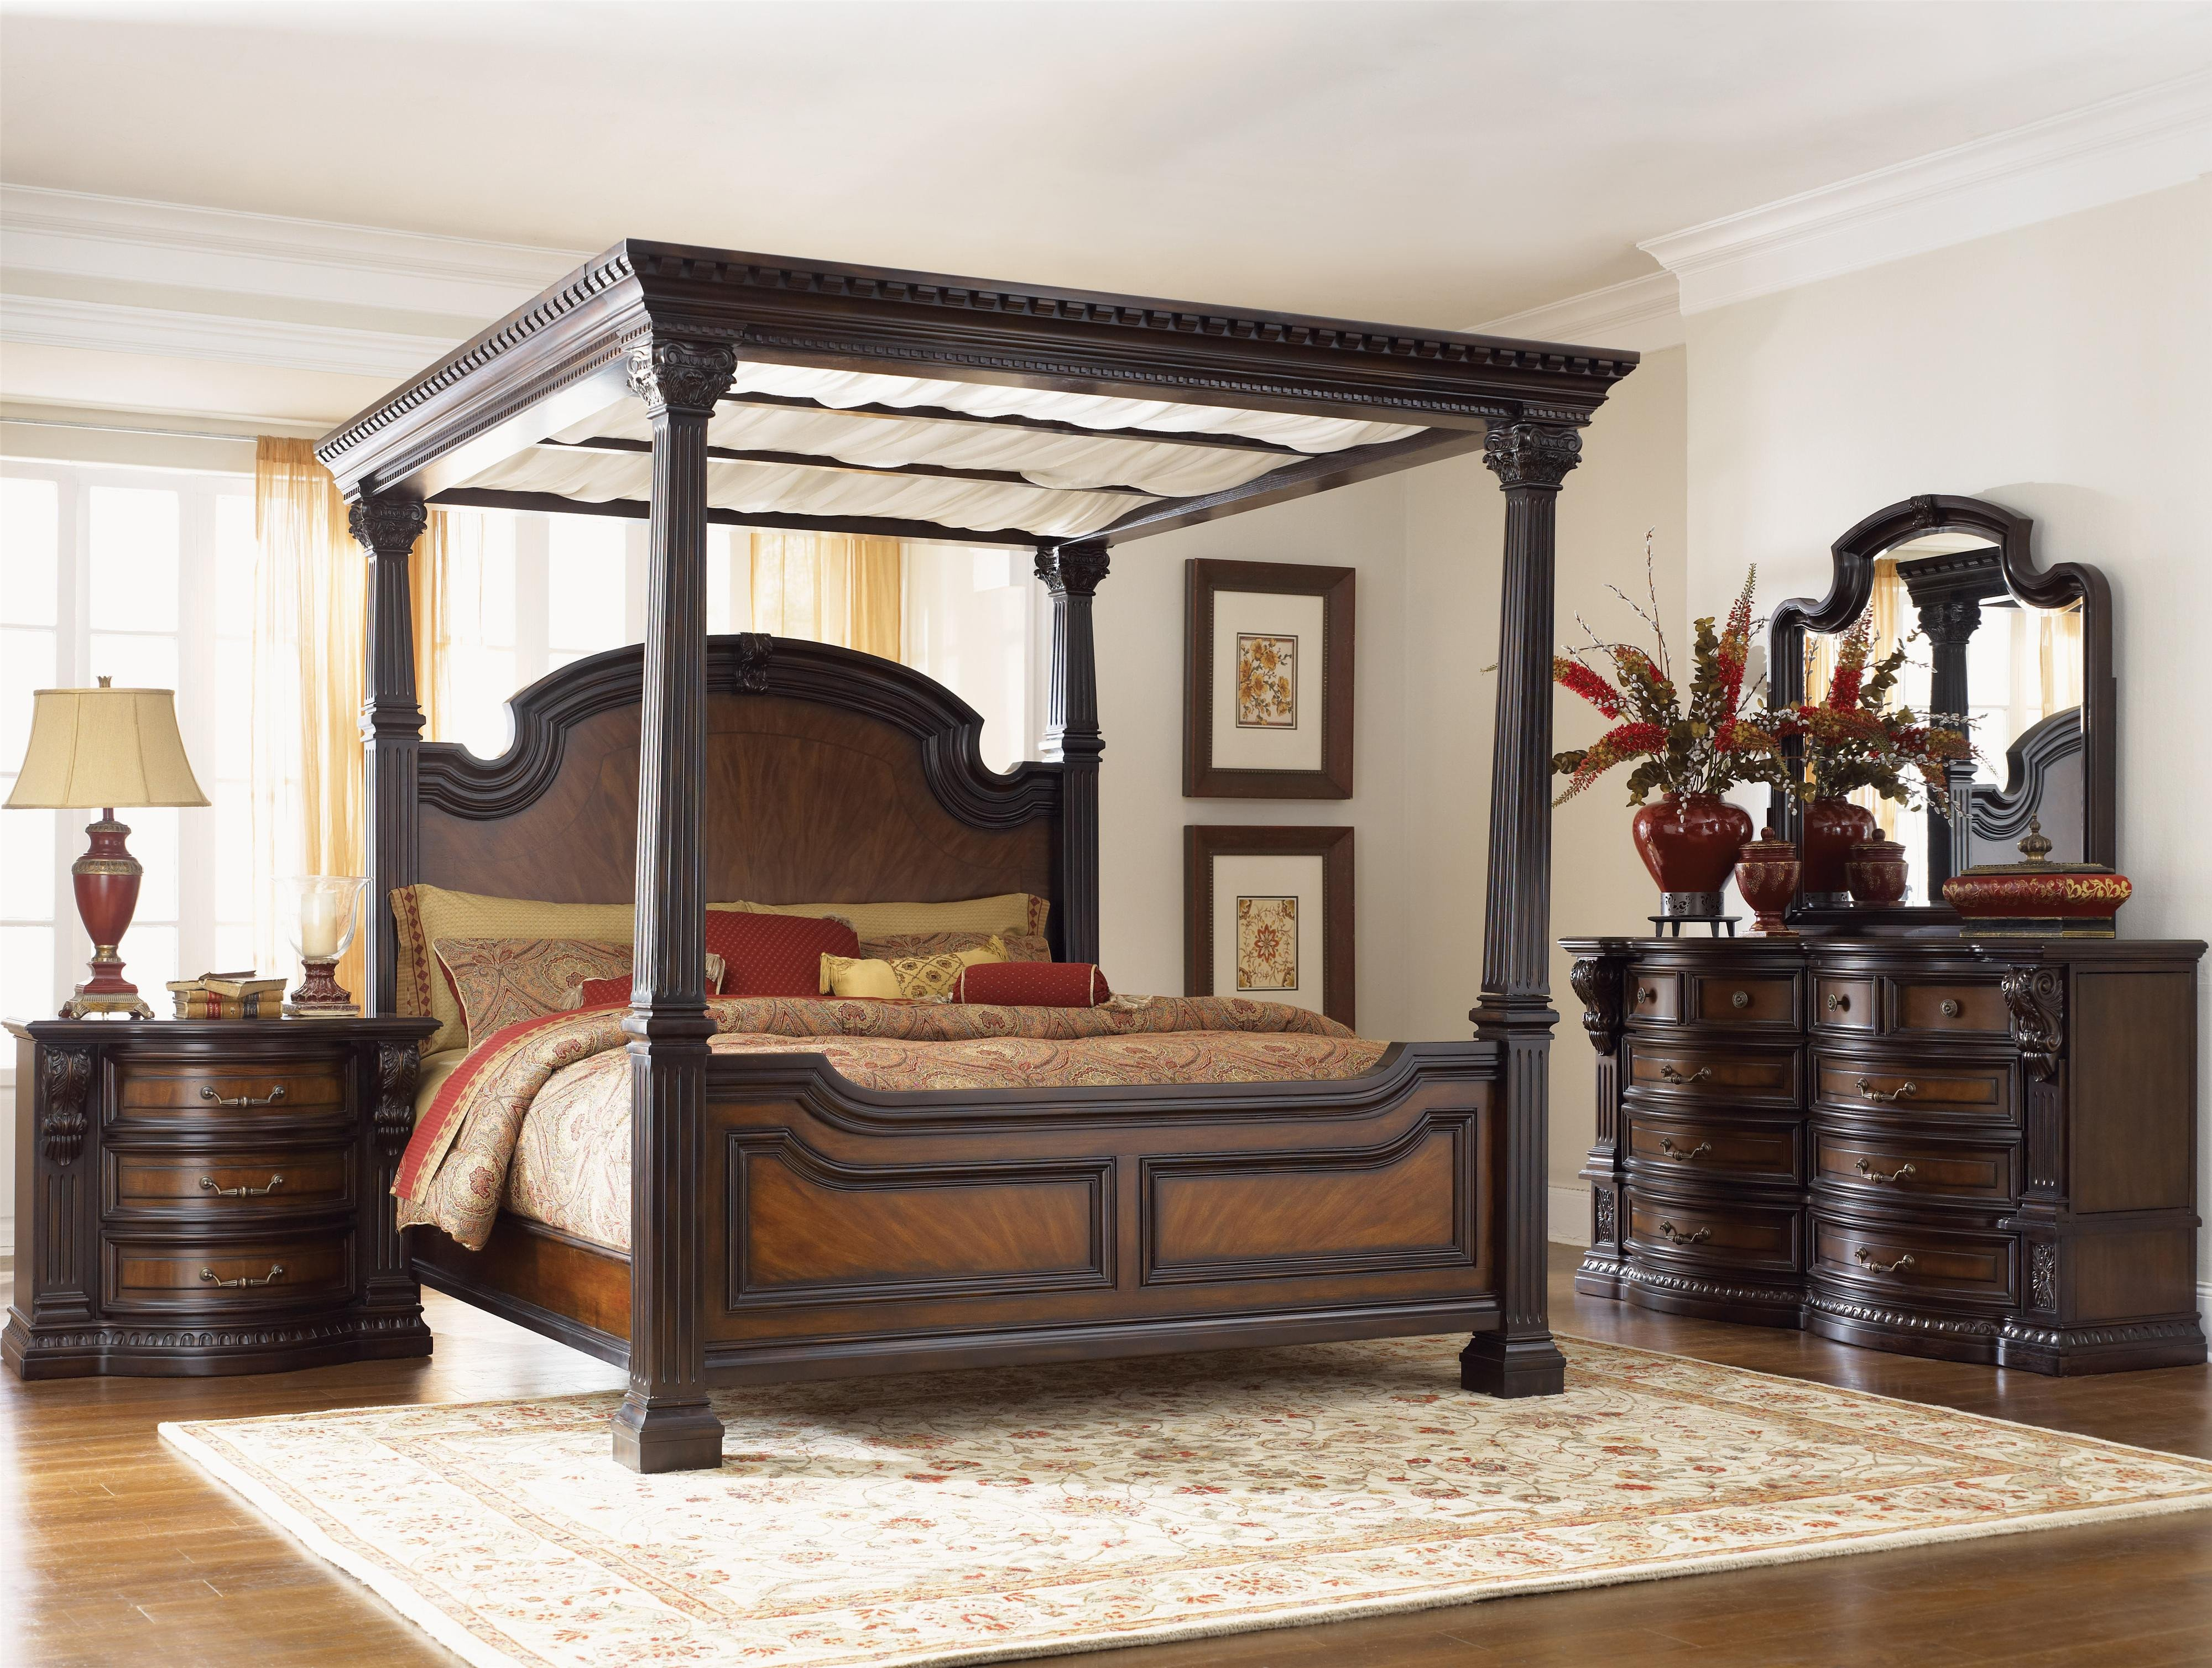 Queen Size Canopy Bedroom Set Luxury Grand Estates 02 by Fairmont Designs Royal Furniture